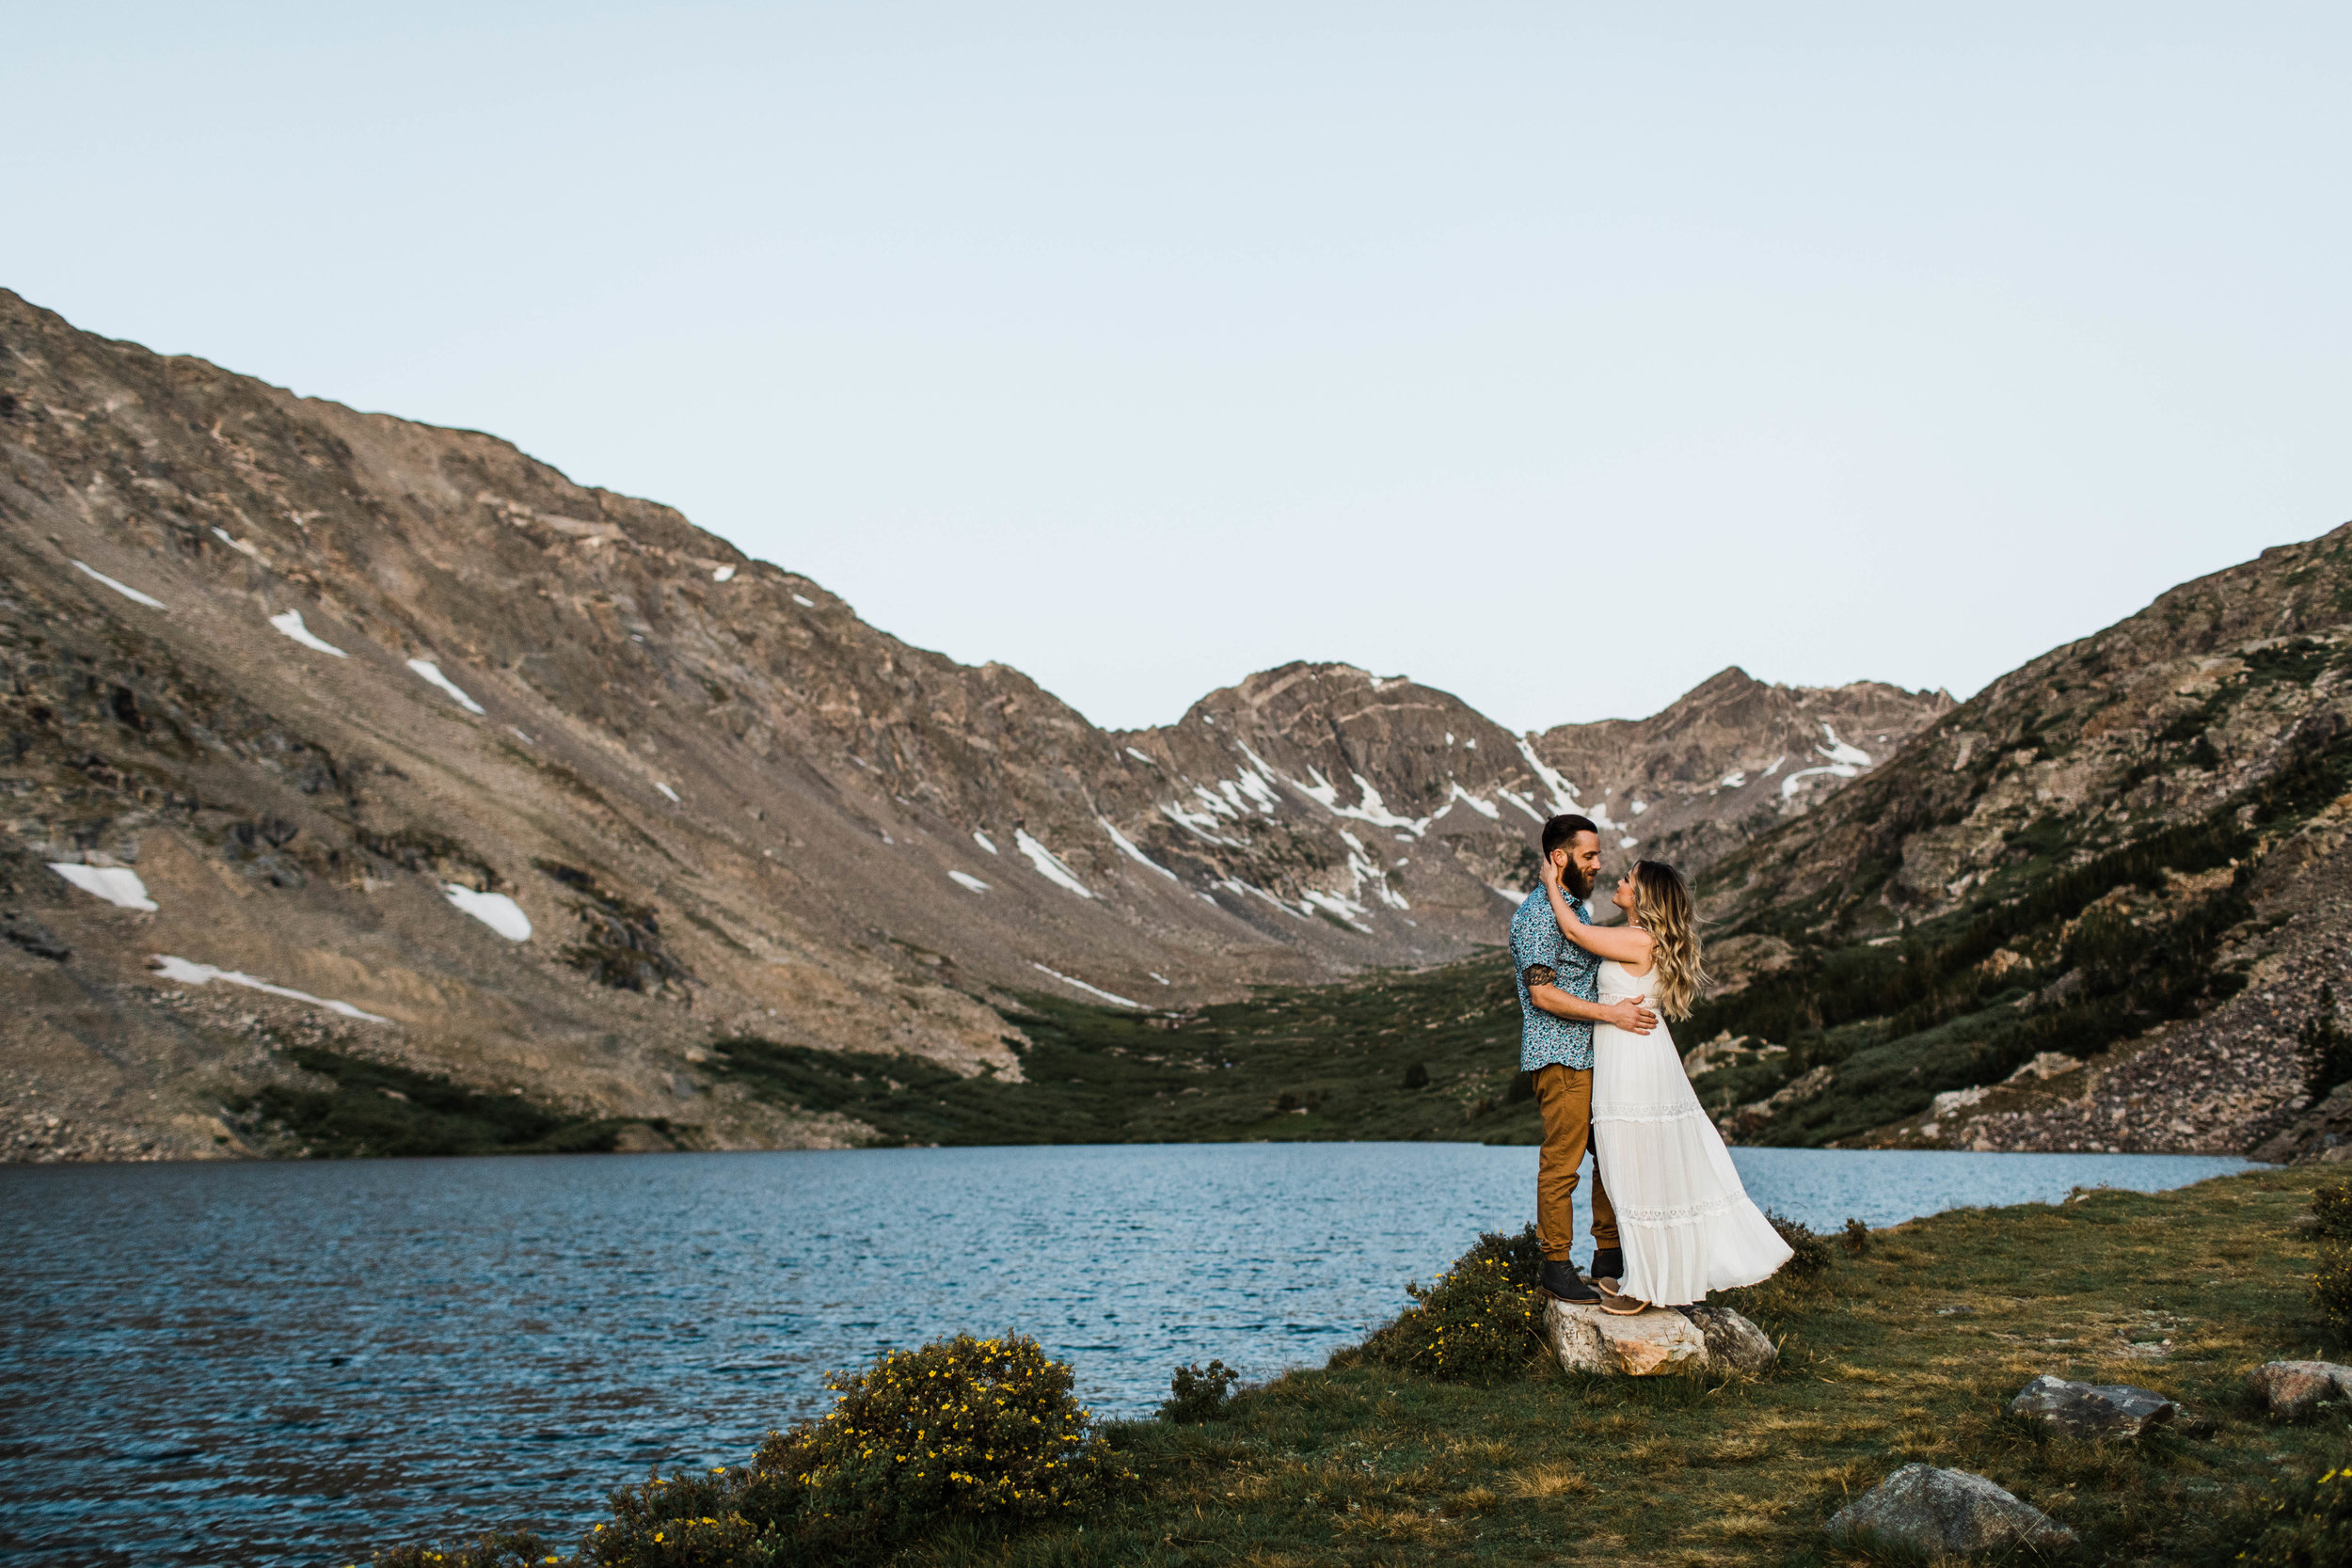 Engaged couple kissing during their Breckenridge adventure engagement photos at an alpine lake | Breckenridge elopement and wedding photographers